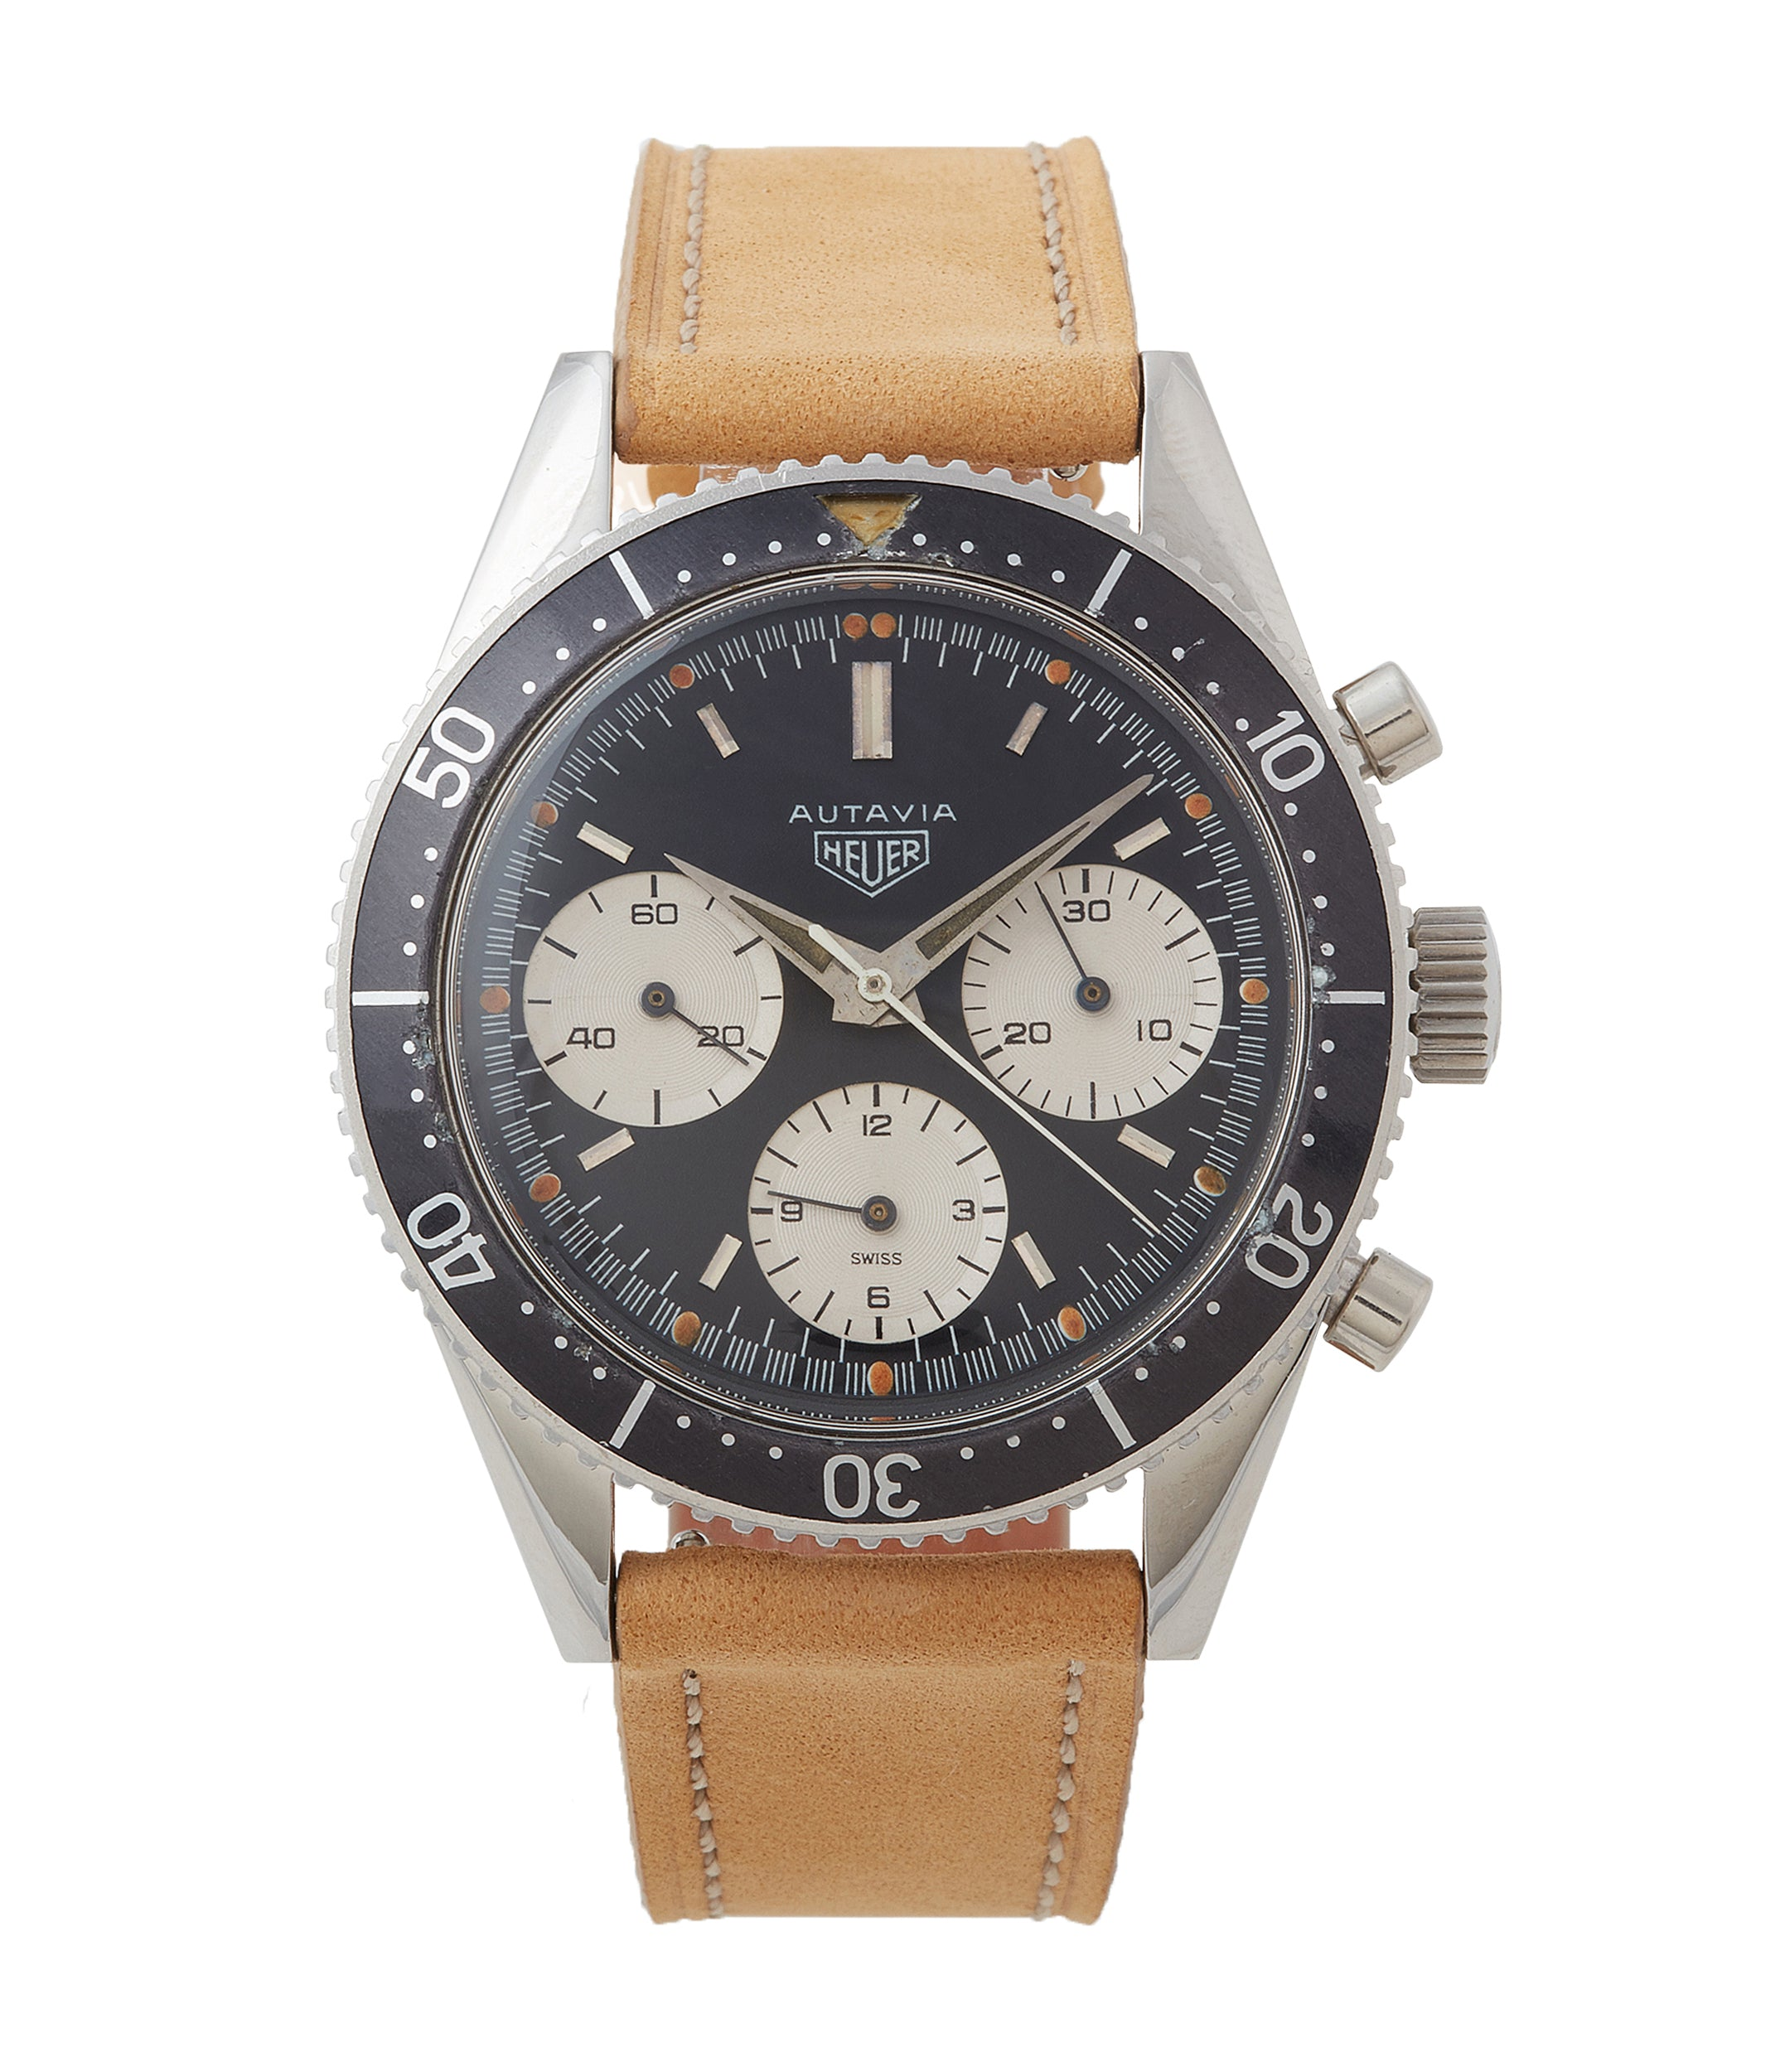 buy vintage Heuer Autavia 2446 Second Execution Valjoux 72 rare first-owner chronograph steel racing sport watch for sale online at A Collected Man London UK rare watch specilaist